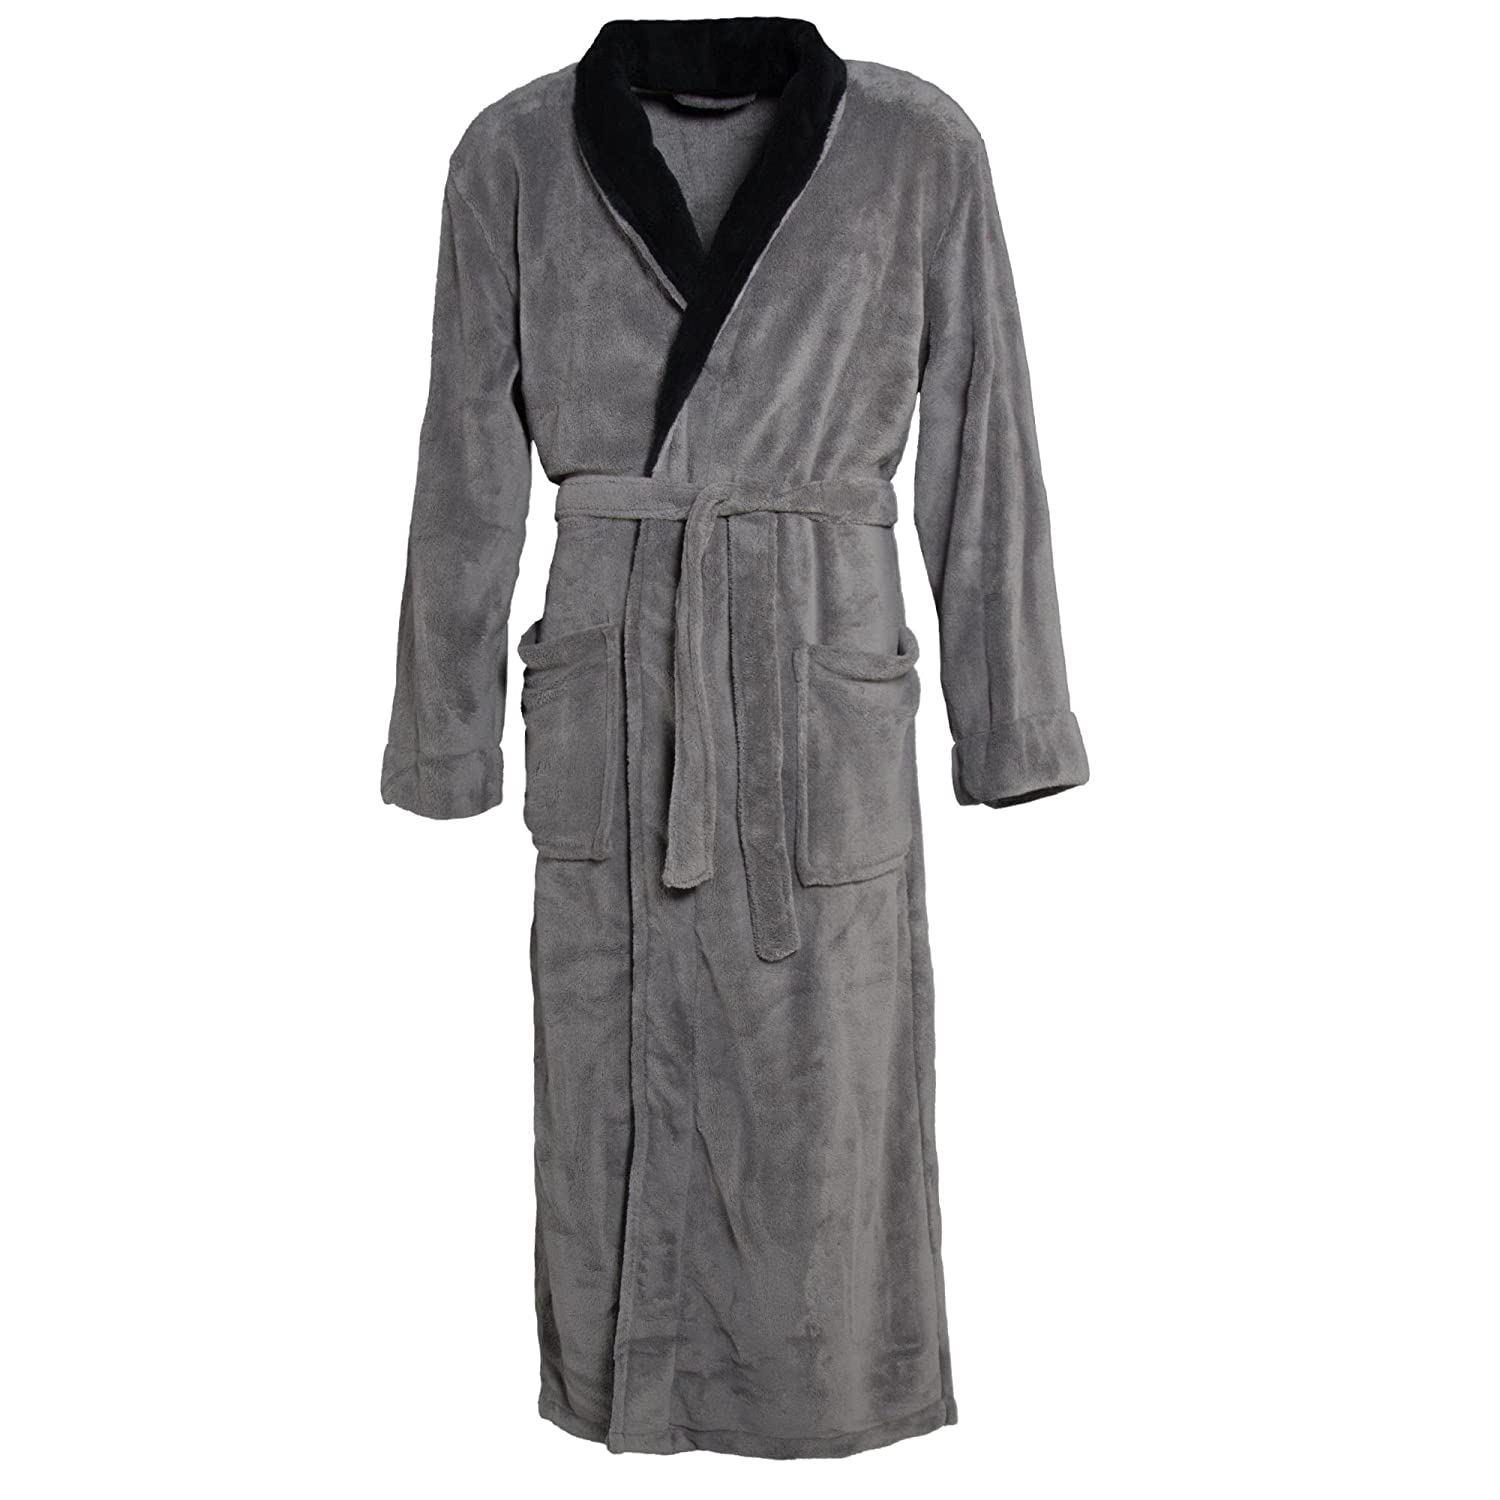 CelinaTex Women's and Men's Bathrobe with Shawl Collar Dressing Gown Coral Fleece Warm Soft and Comfortable, Nevada 2 Colour, Microfibre, anthrazit mit schwarz, Small 4312